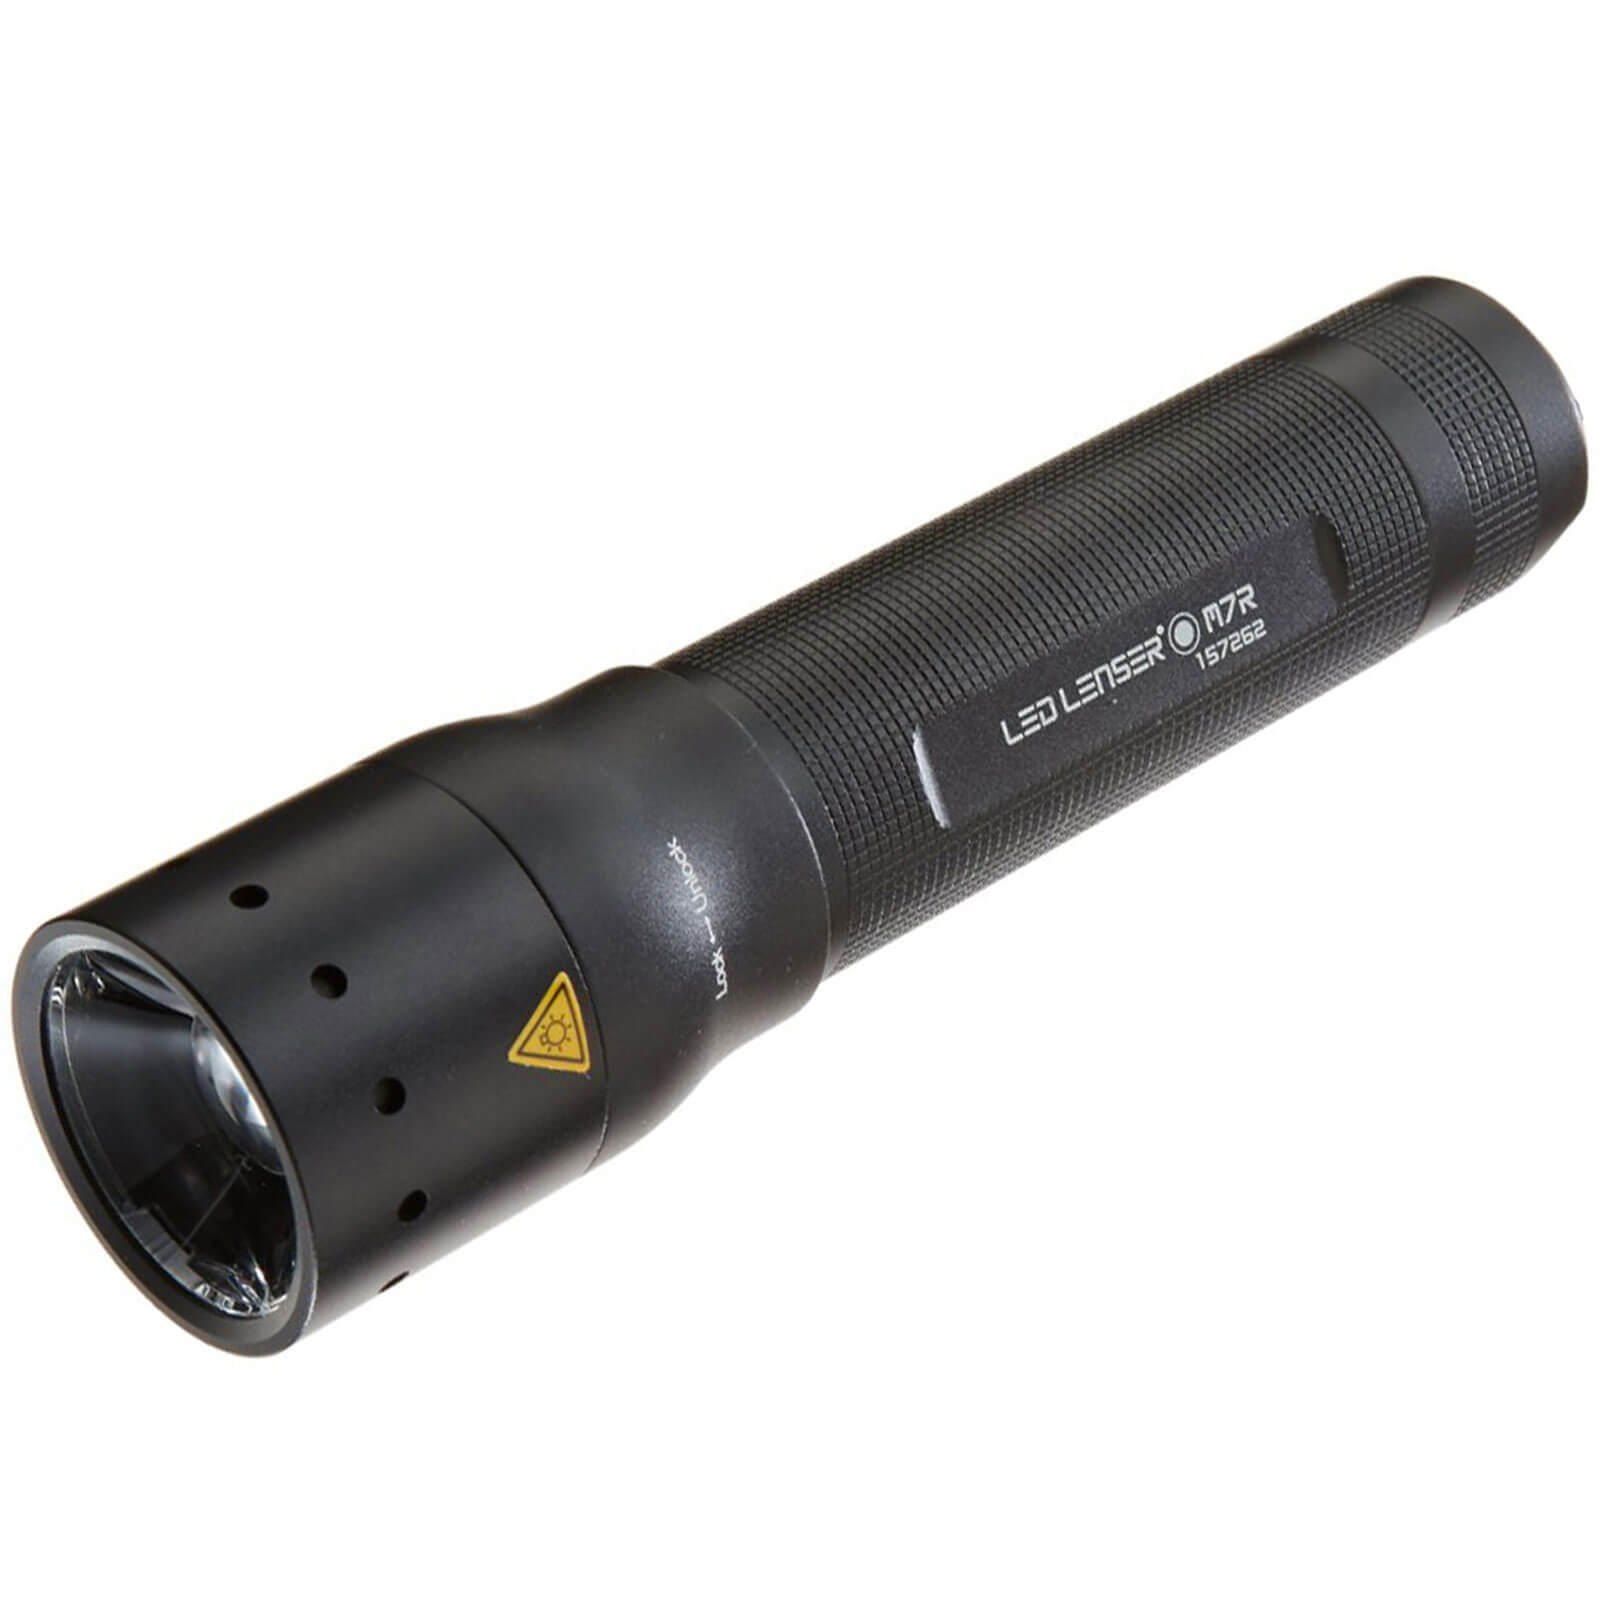 LED Lenser M7R Professional Rechargeable Focusing Torch Black in Case 220 Lumens